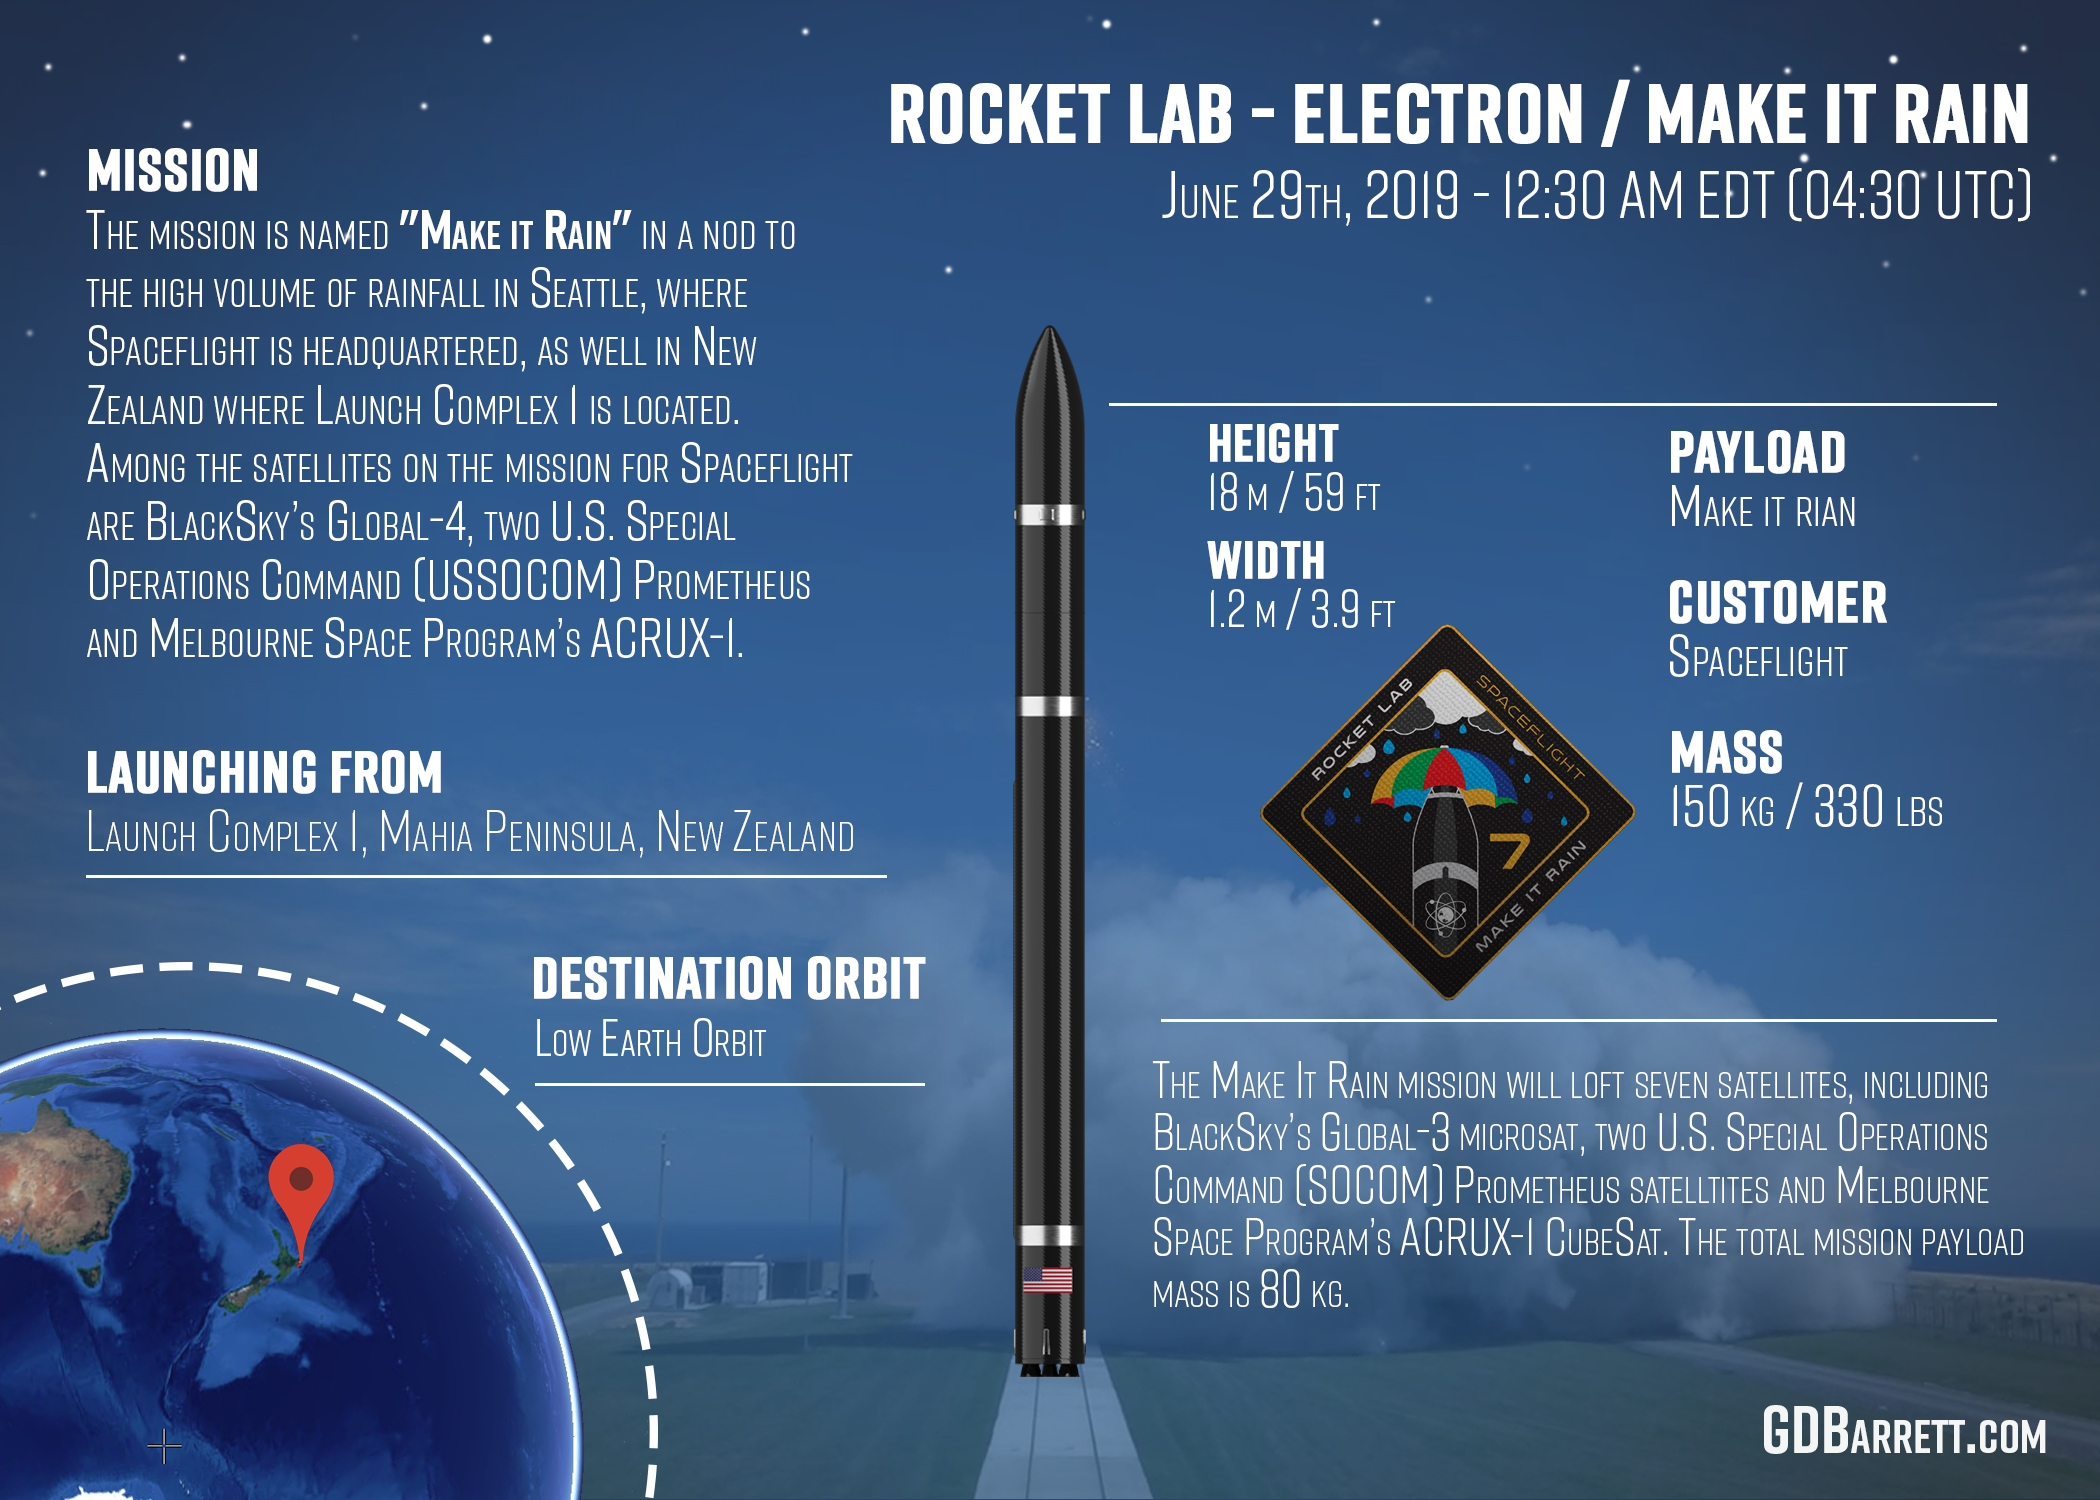 RocketLab Electron - Make It Rain